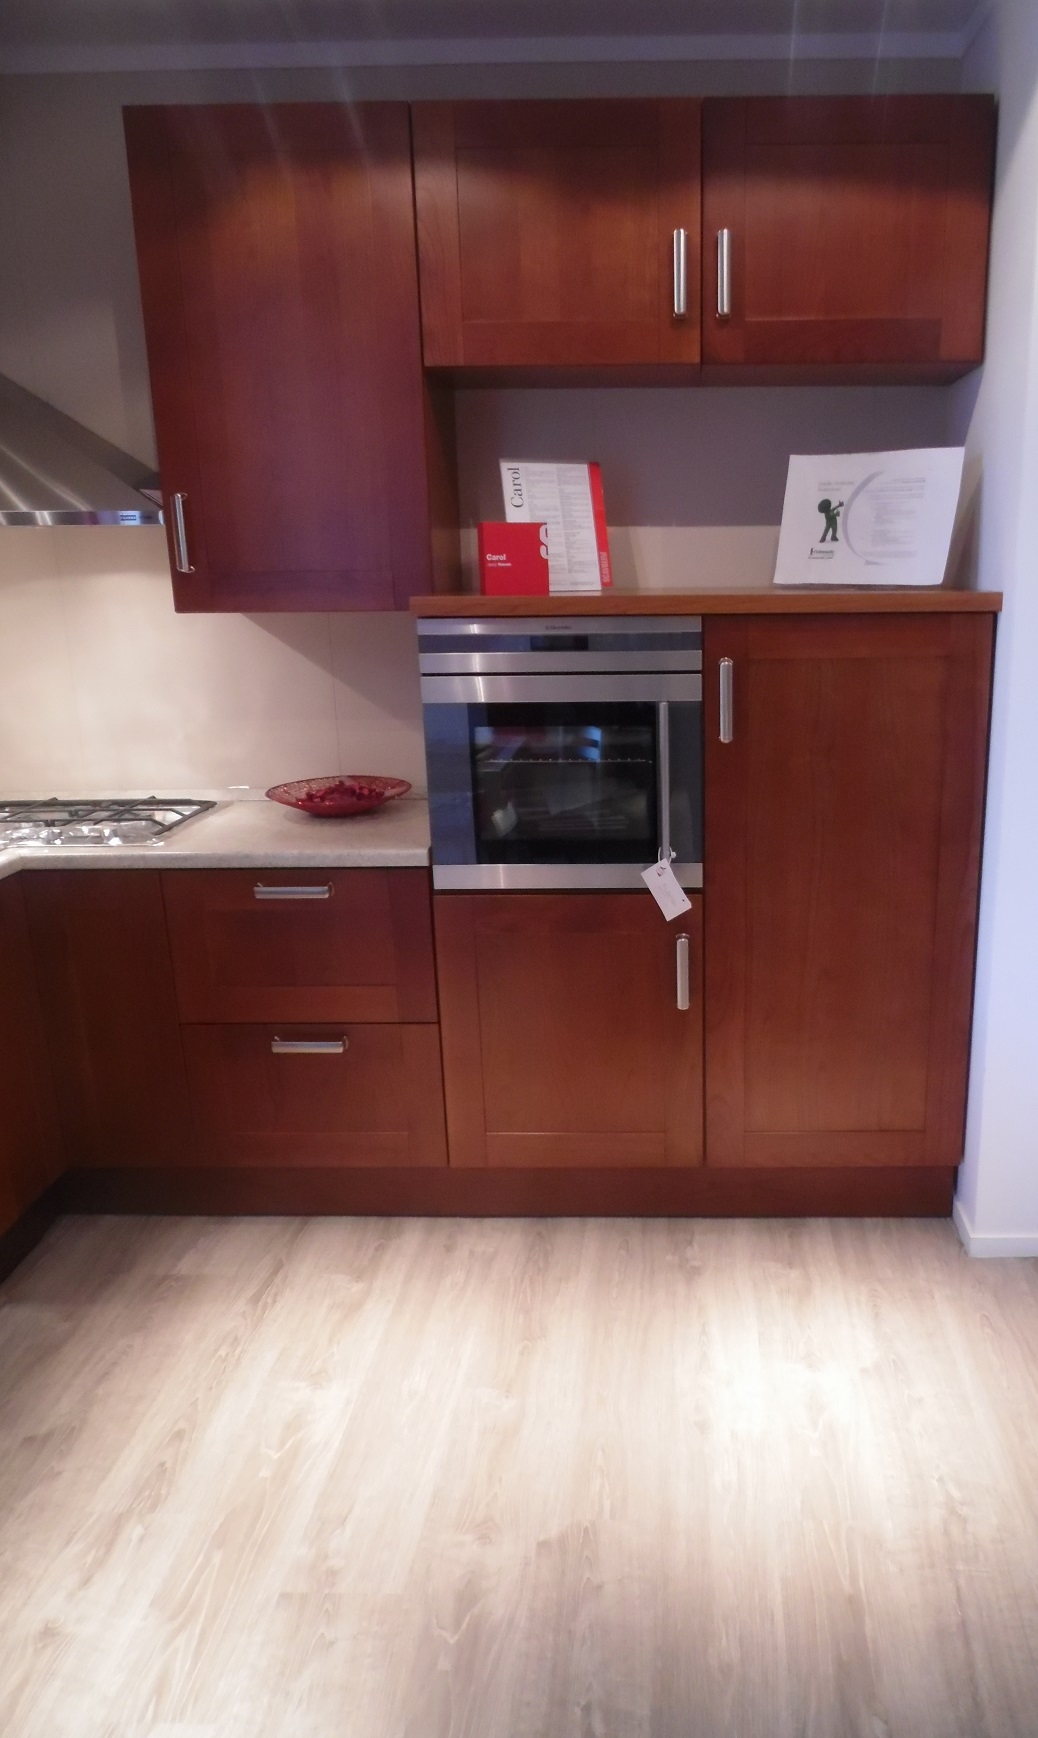 Cucine ad angolo moderne piccole stunning cucine moderne - Cucine ad angolo ...